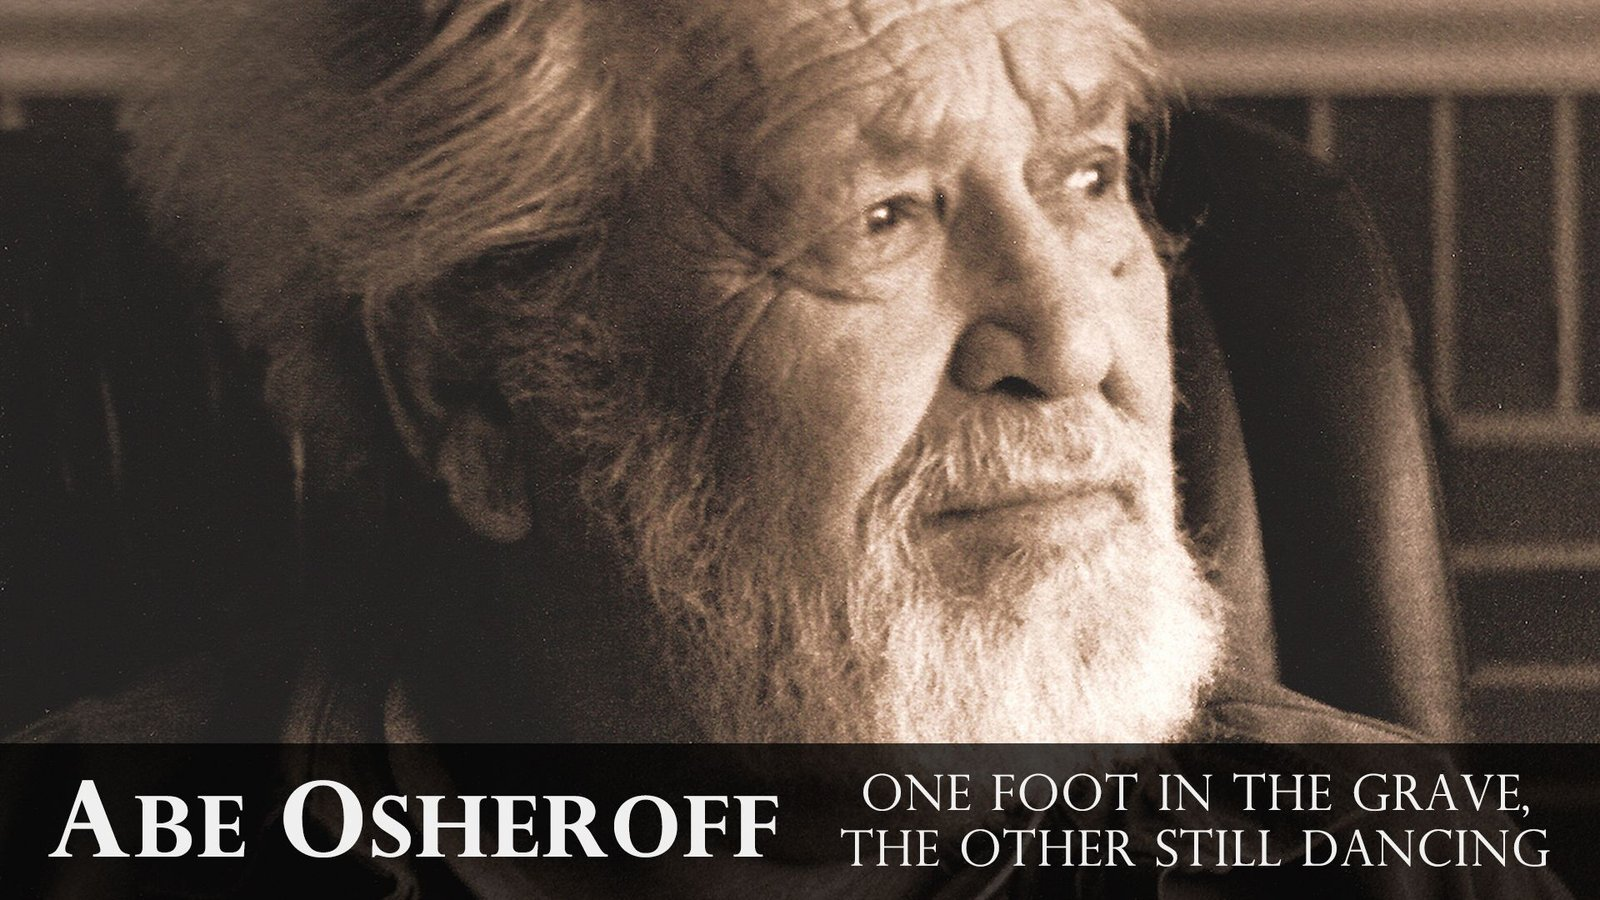 Abe Osheroff One Foot in the Grave, the Other Still Dancing